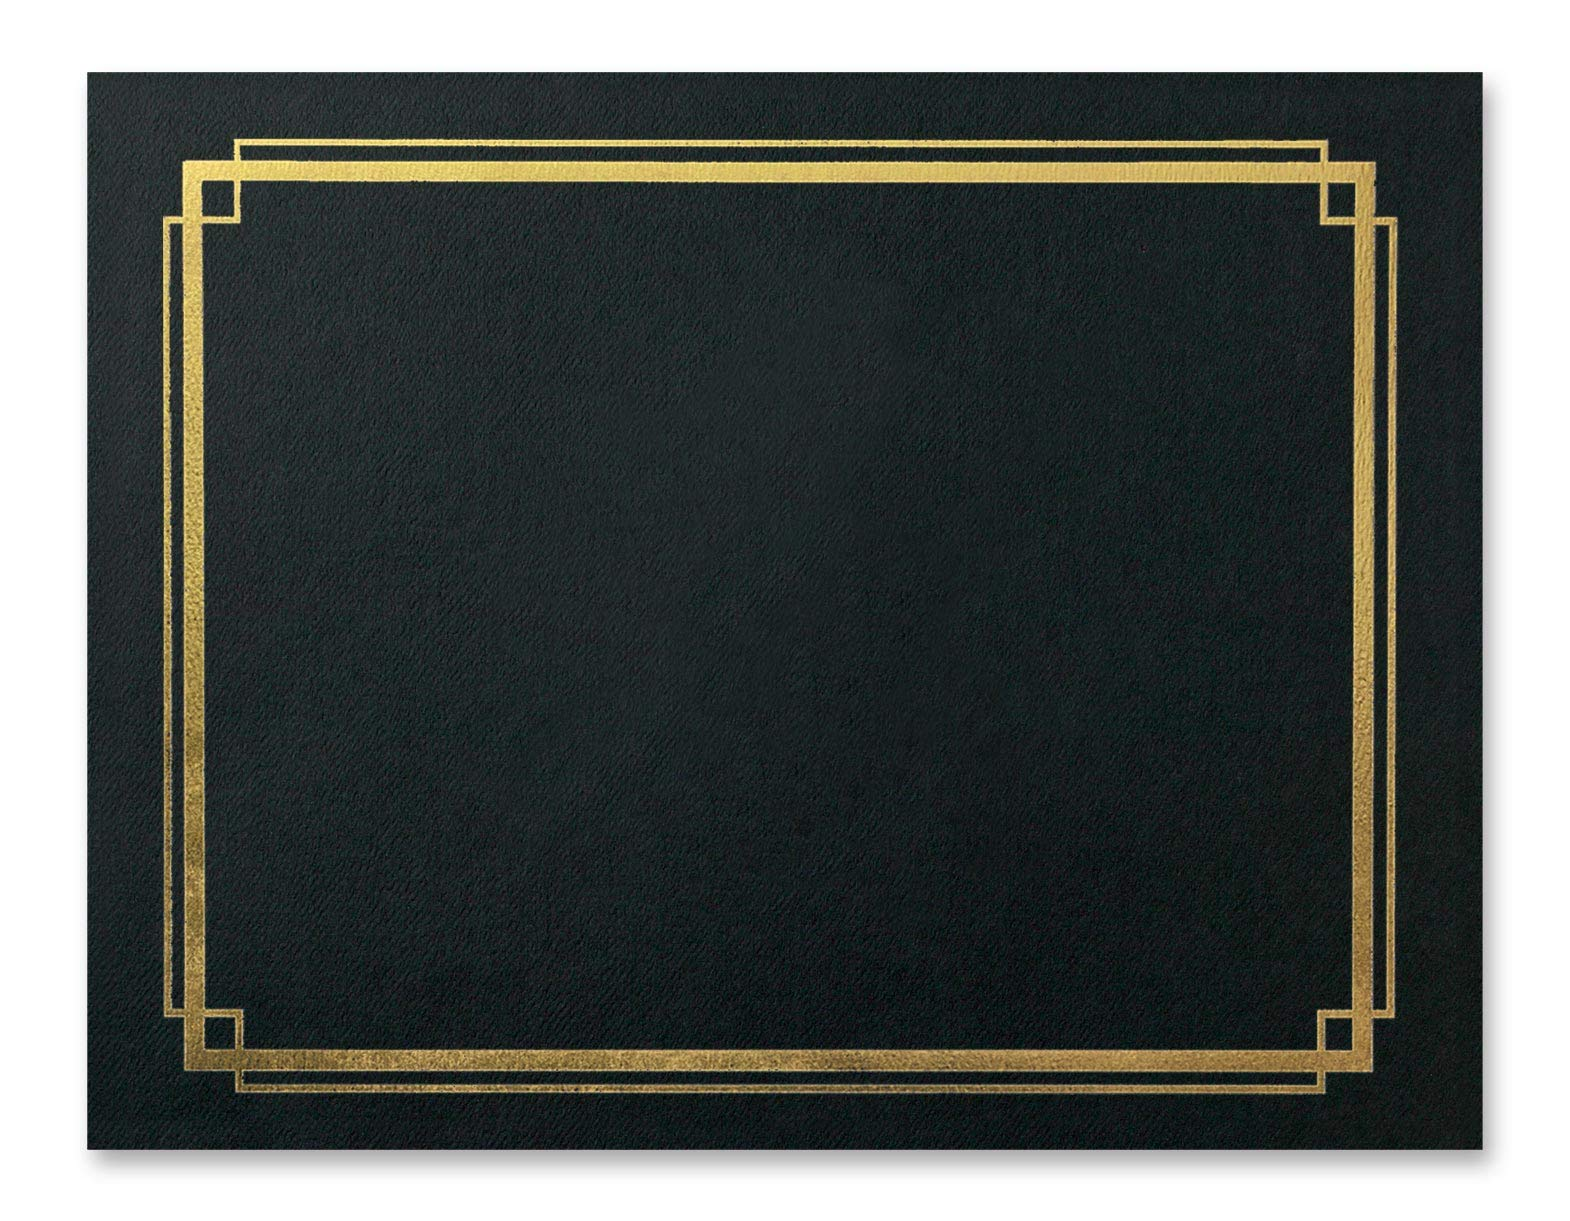 Black Certificate Jackets with Gold Foil Border, Heavy Linen, 10 Count by PaperDirect